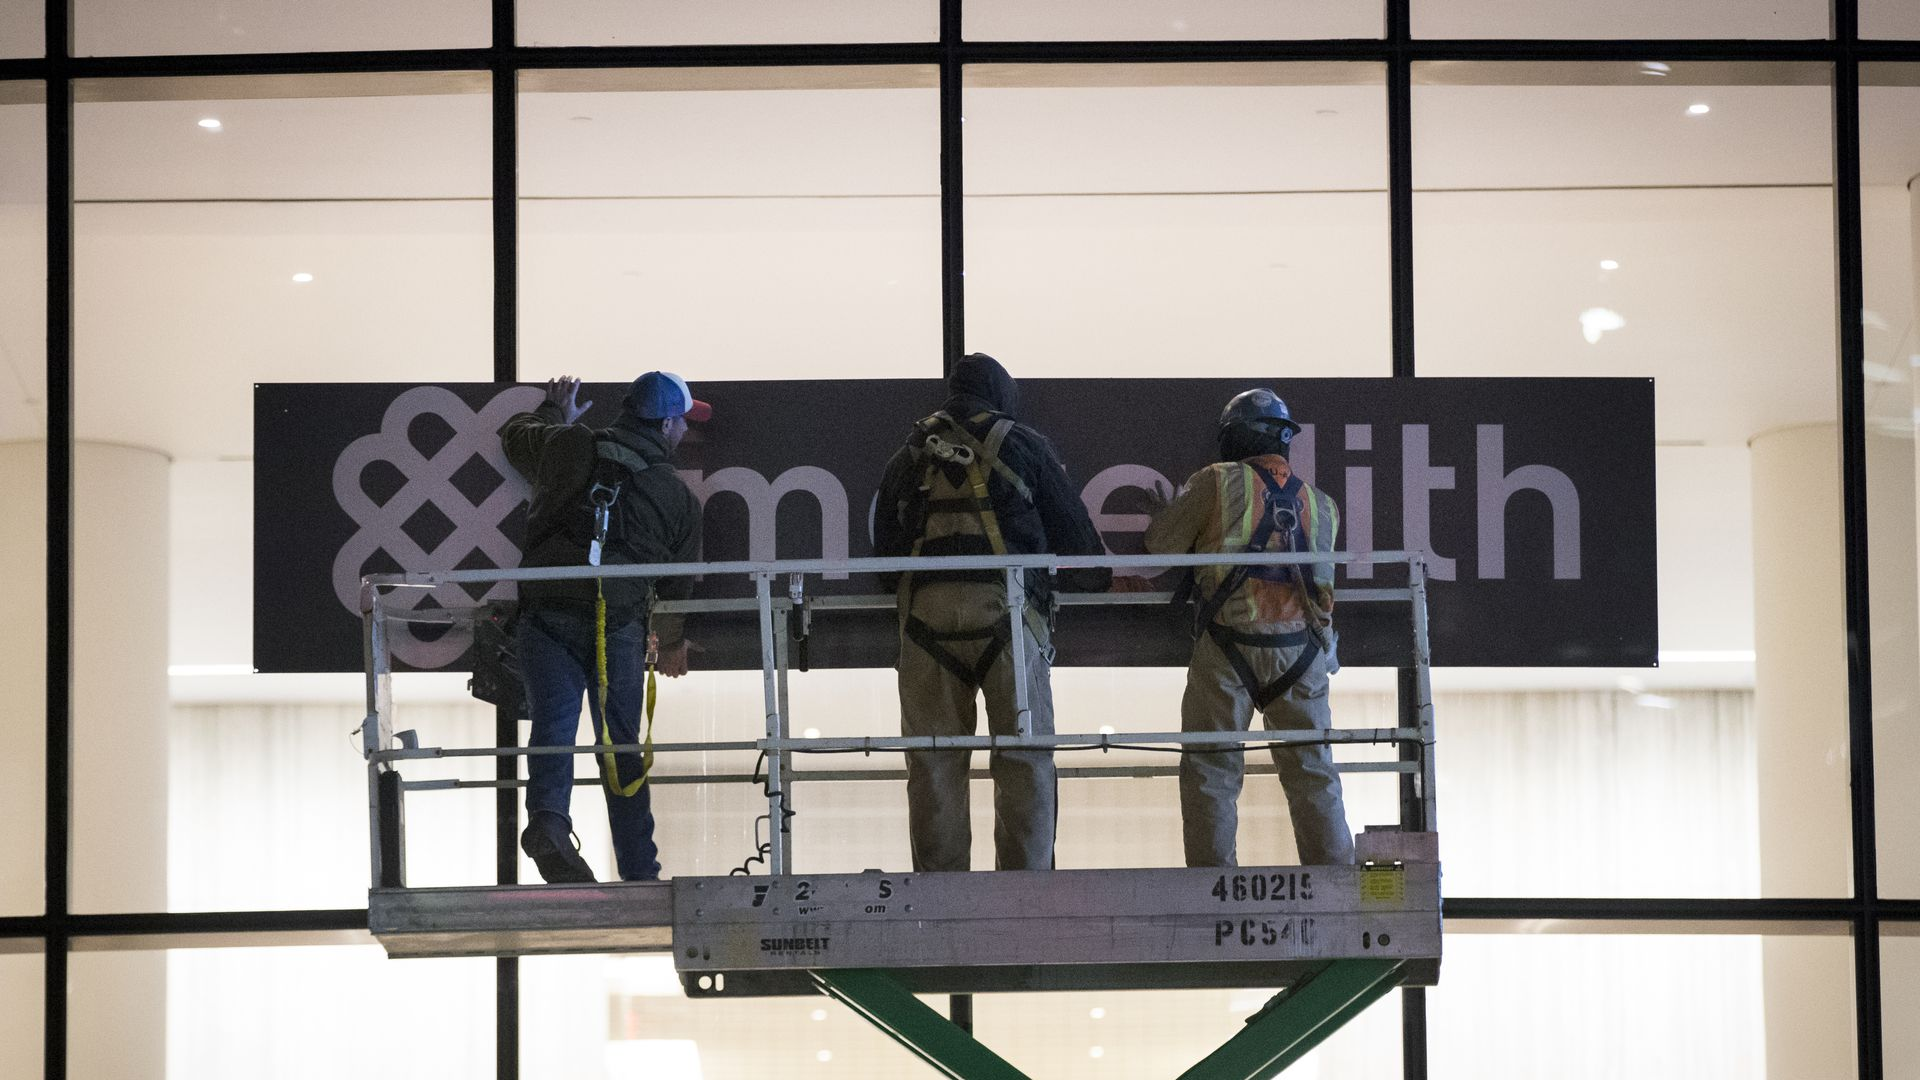 Meredith workers replace the old Time Inc. logo.